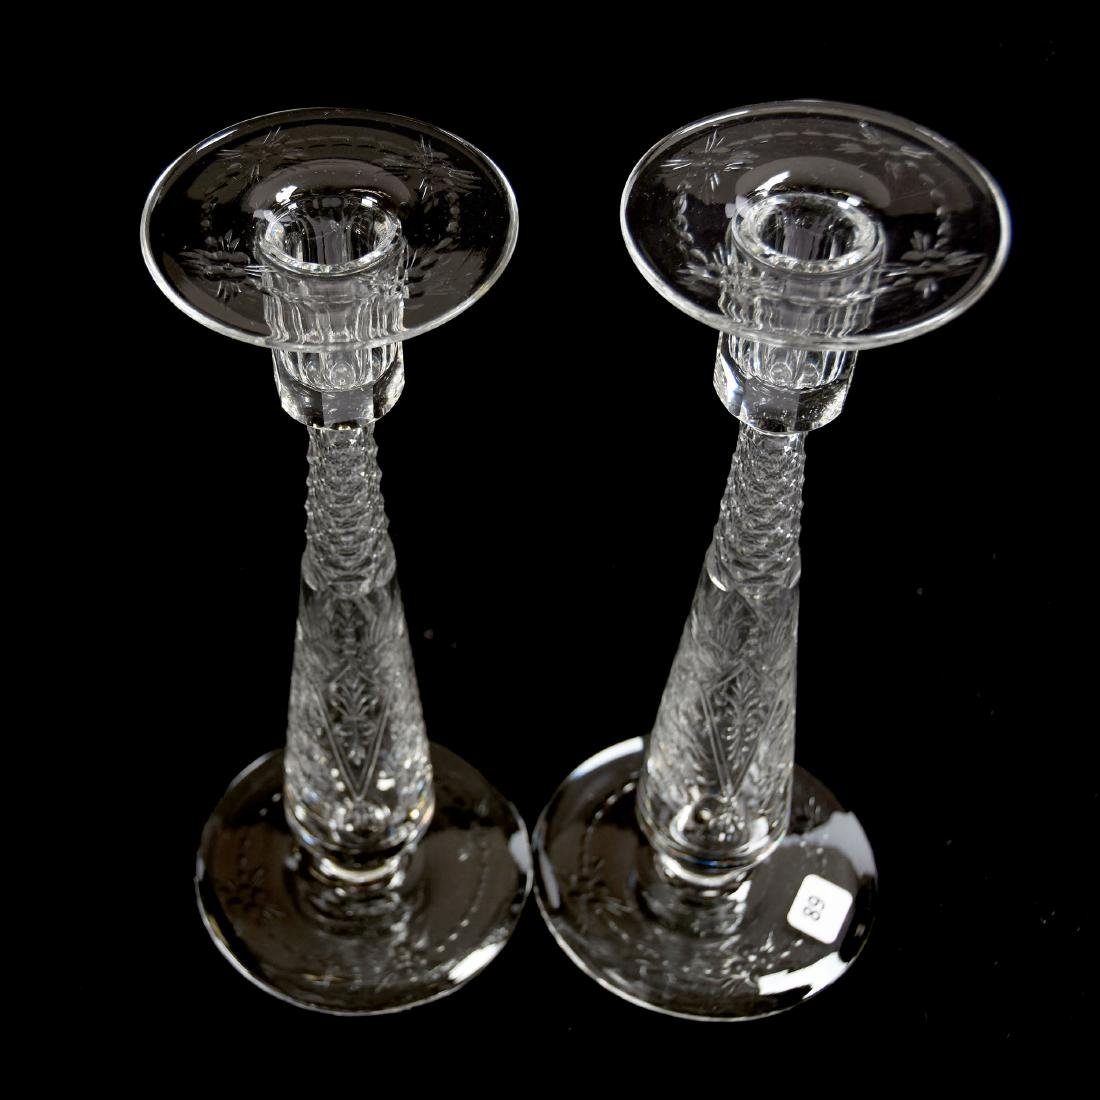 Pair Candlesticks, Signed Hawkes, Engraved Floral - 2